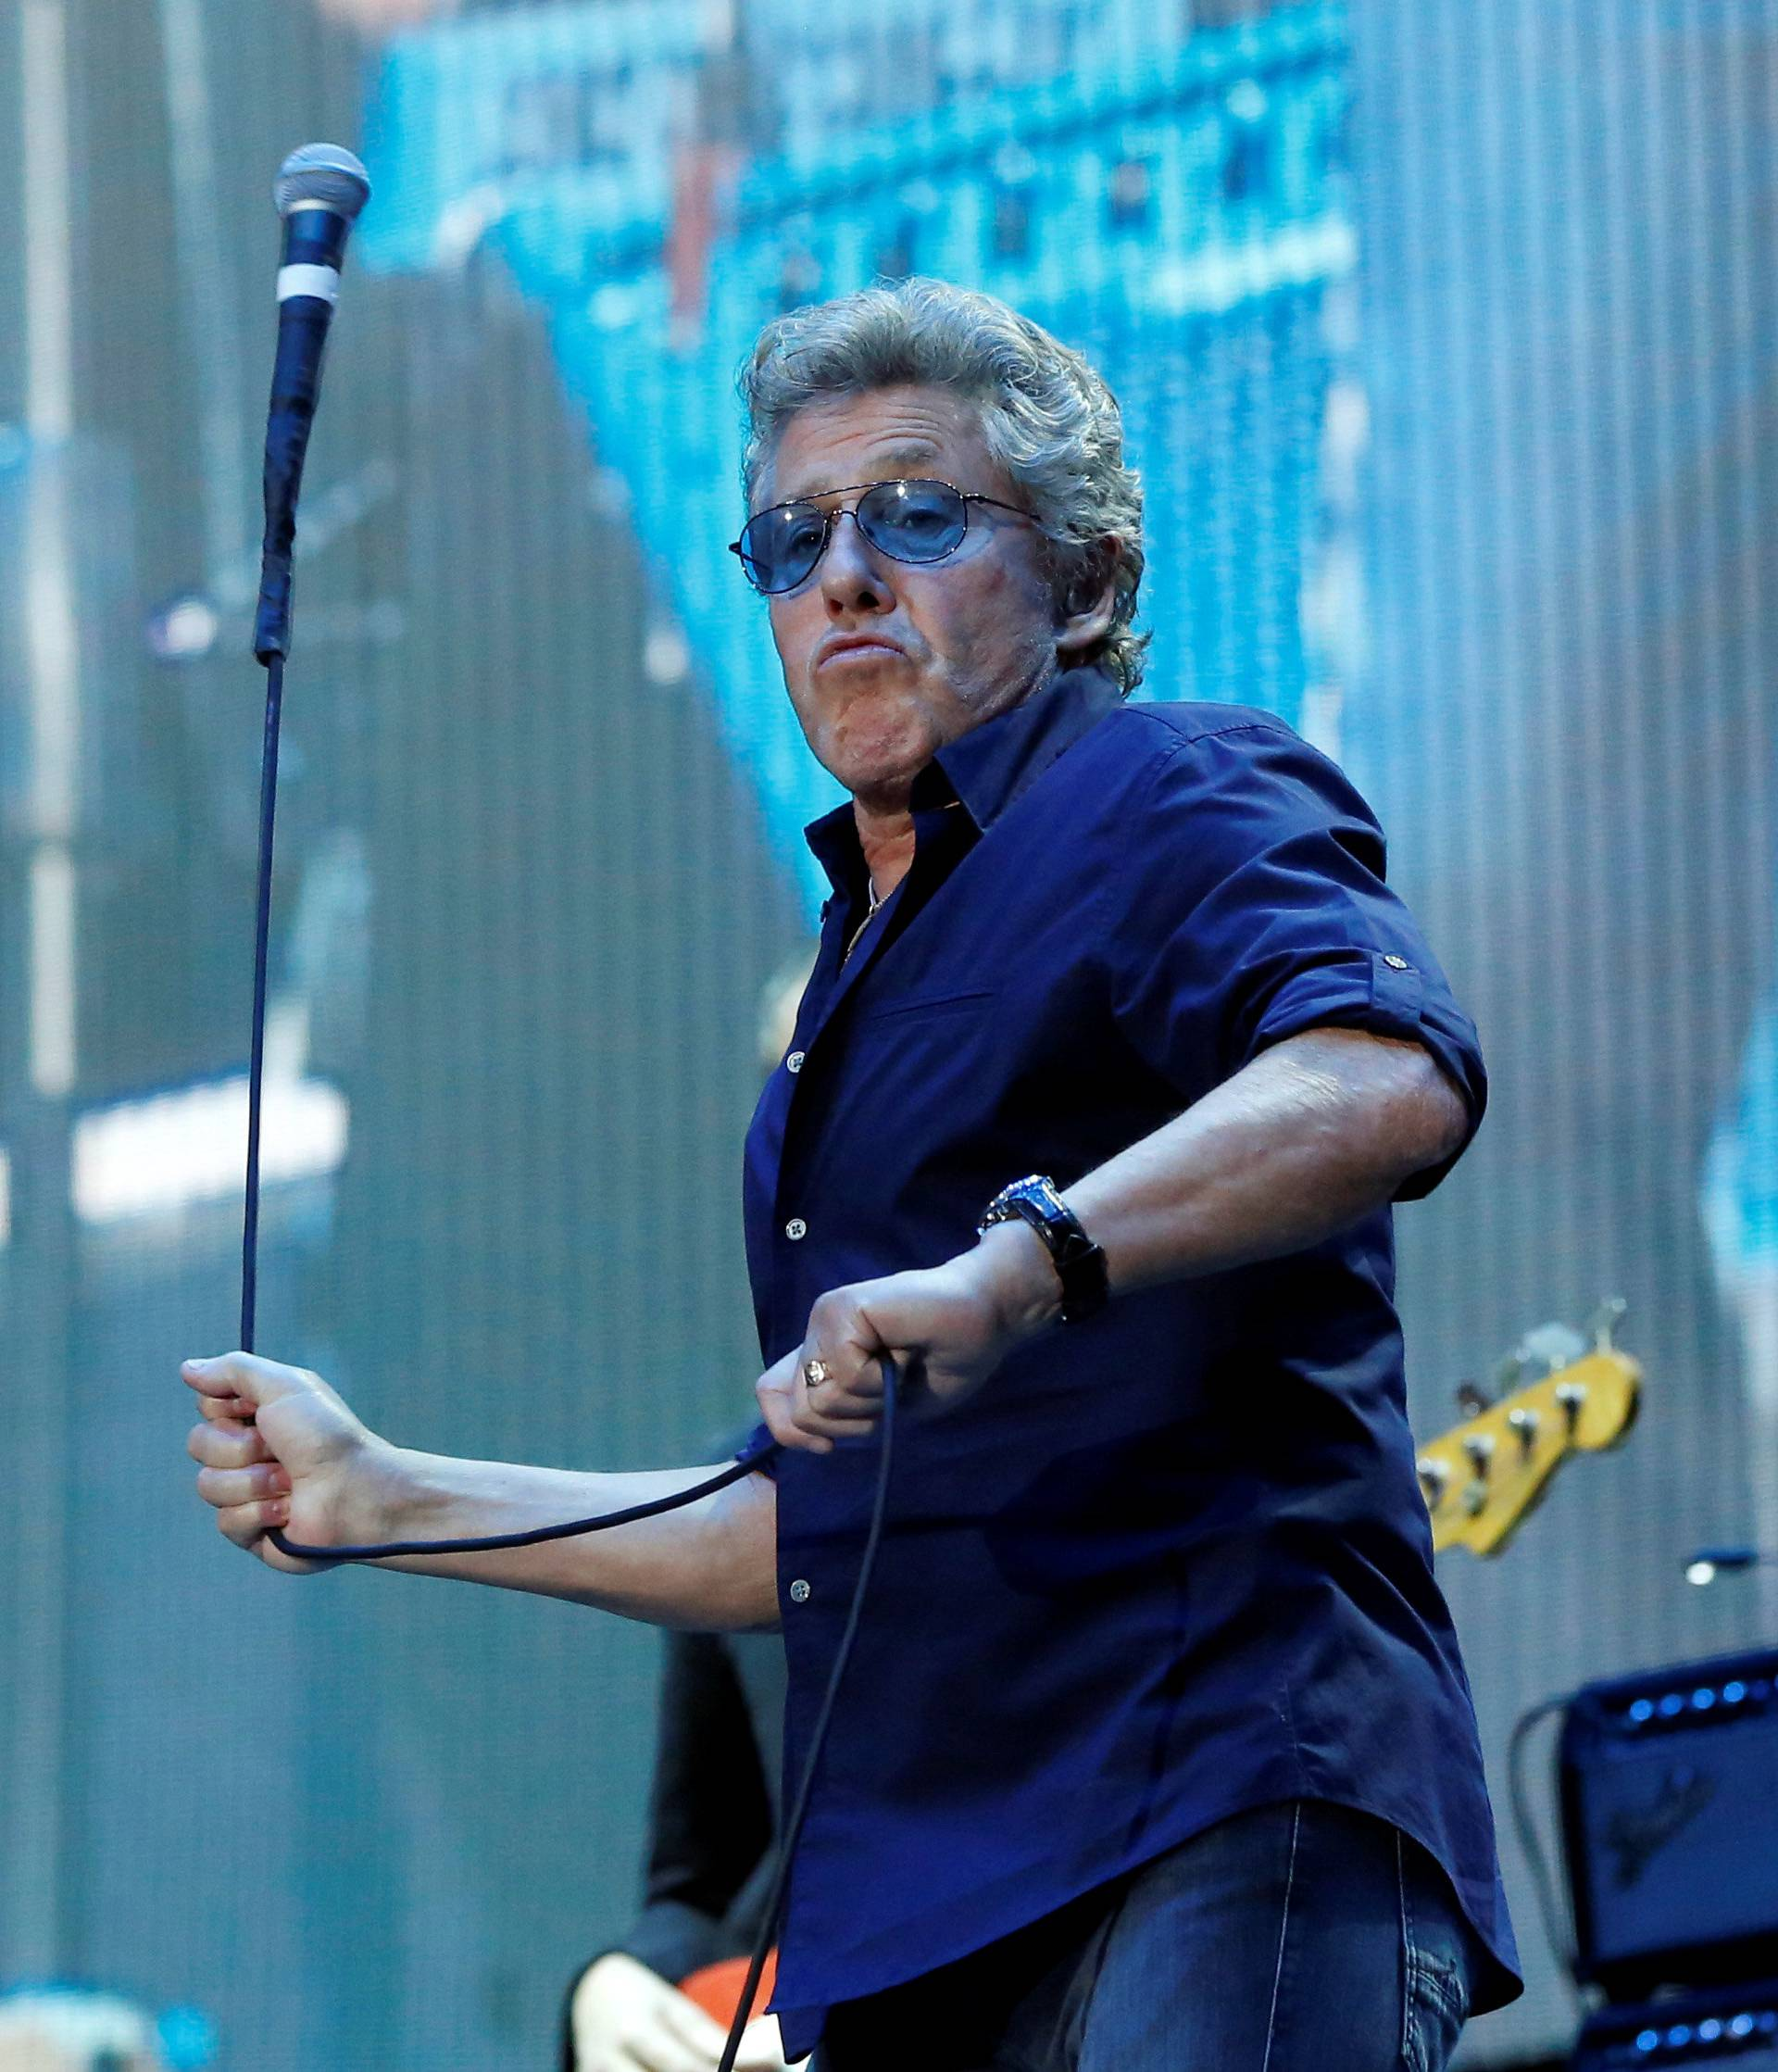 Daltrey of The Who performs at Desert Trip music festival at Empire Polo Club in Indio